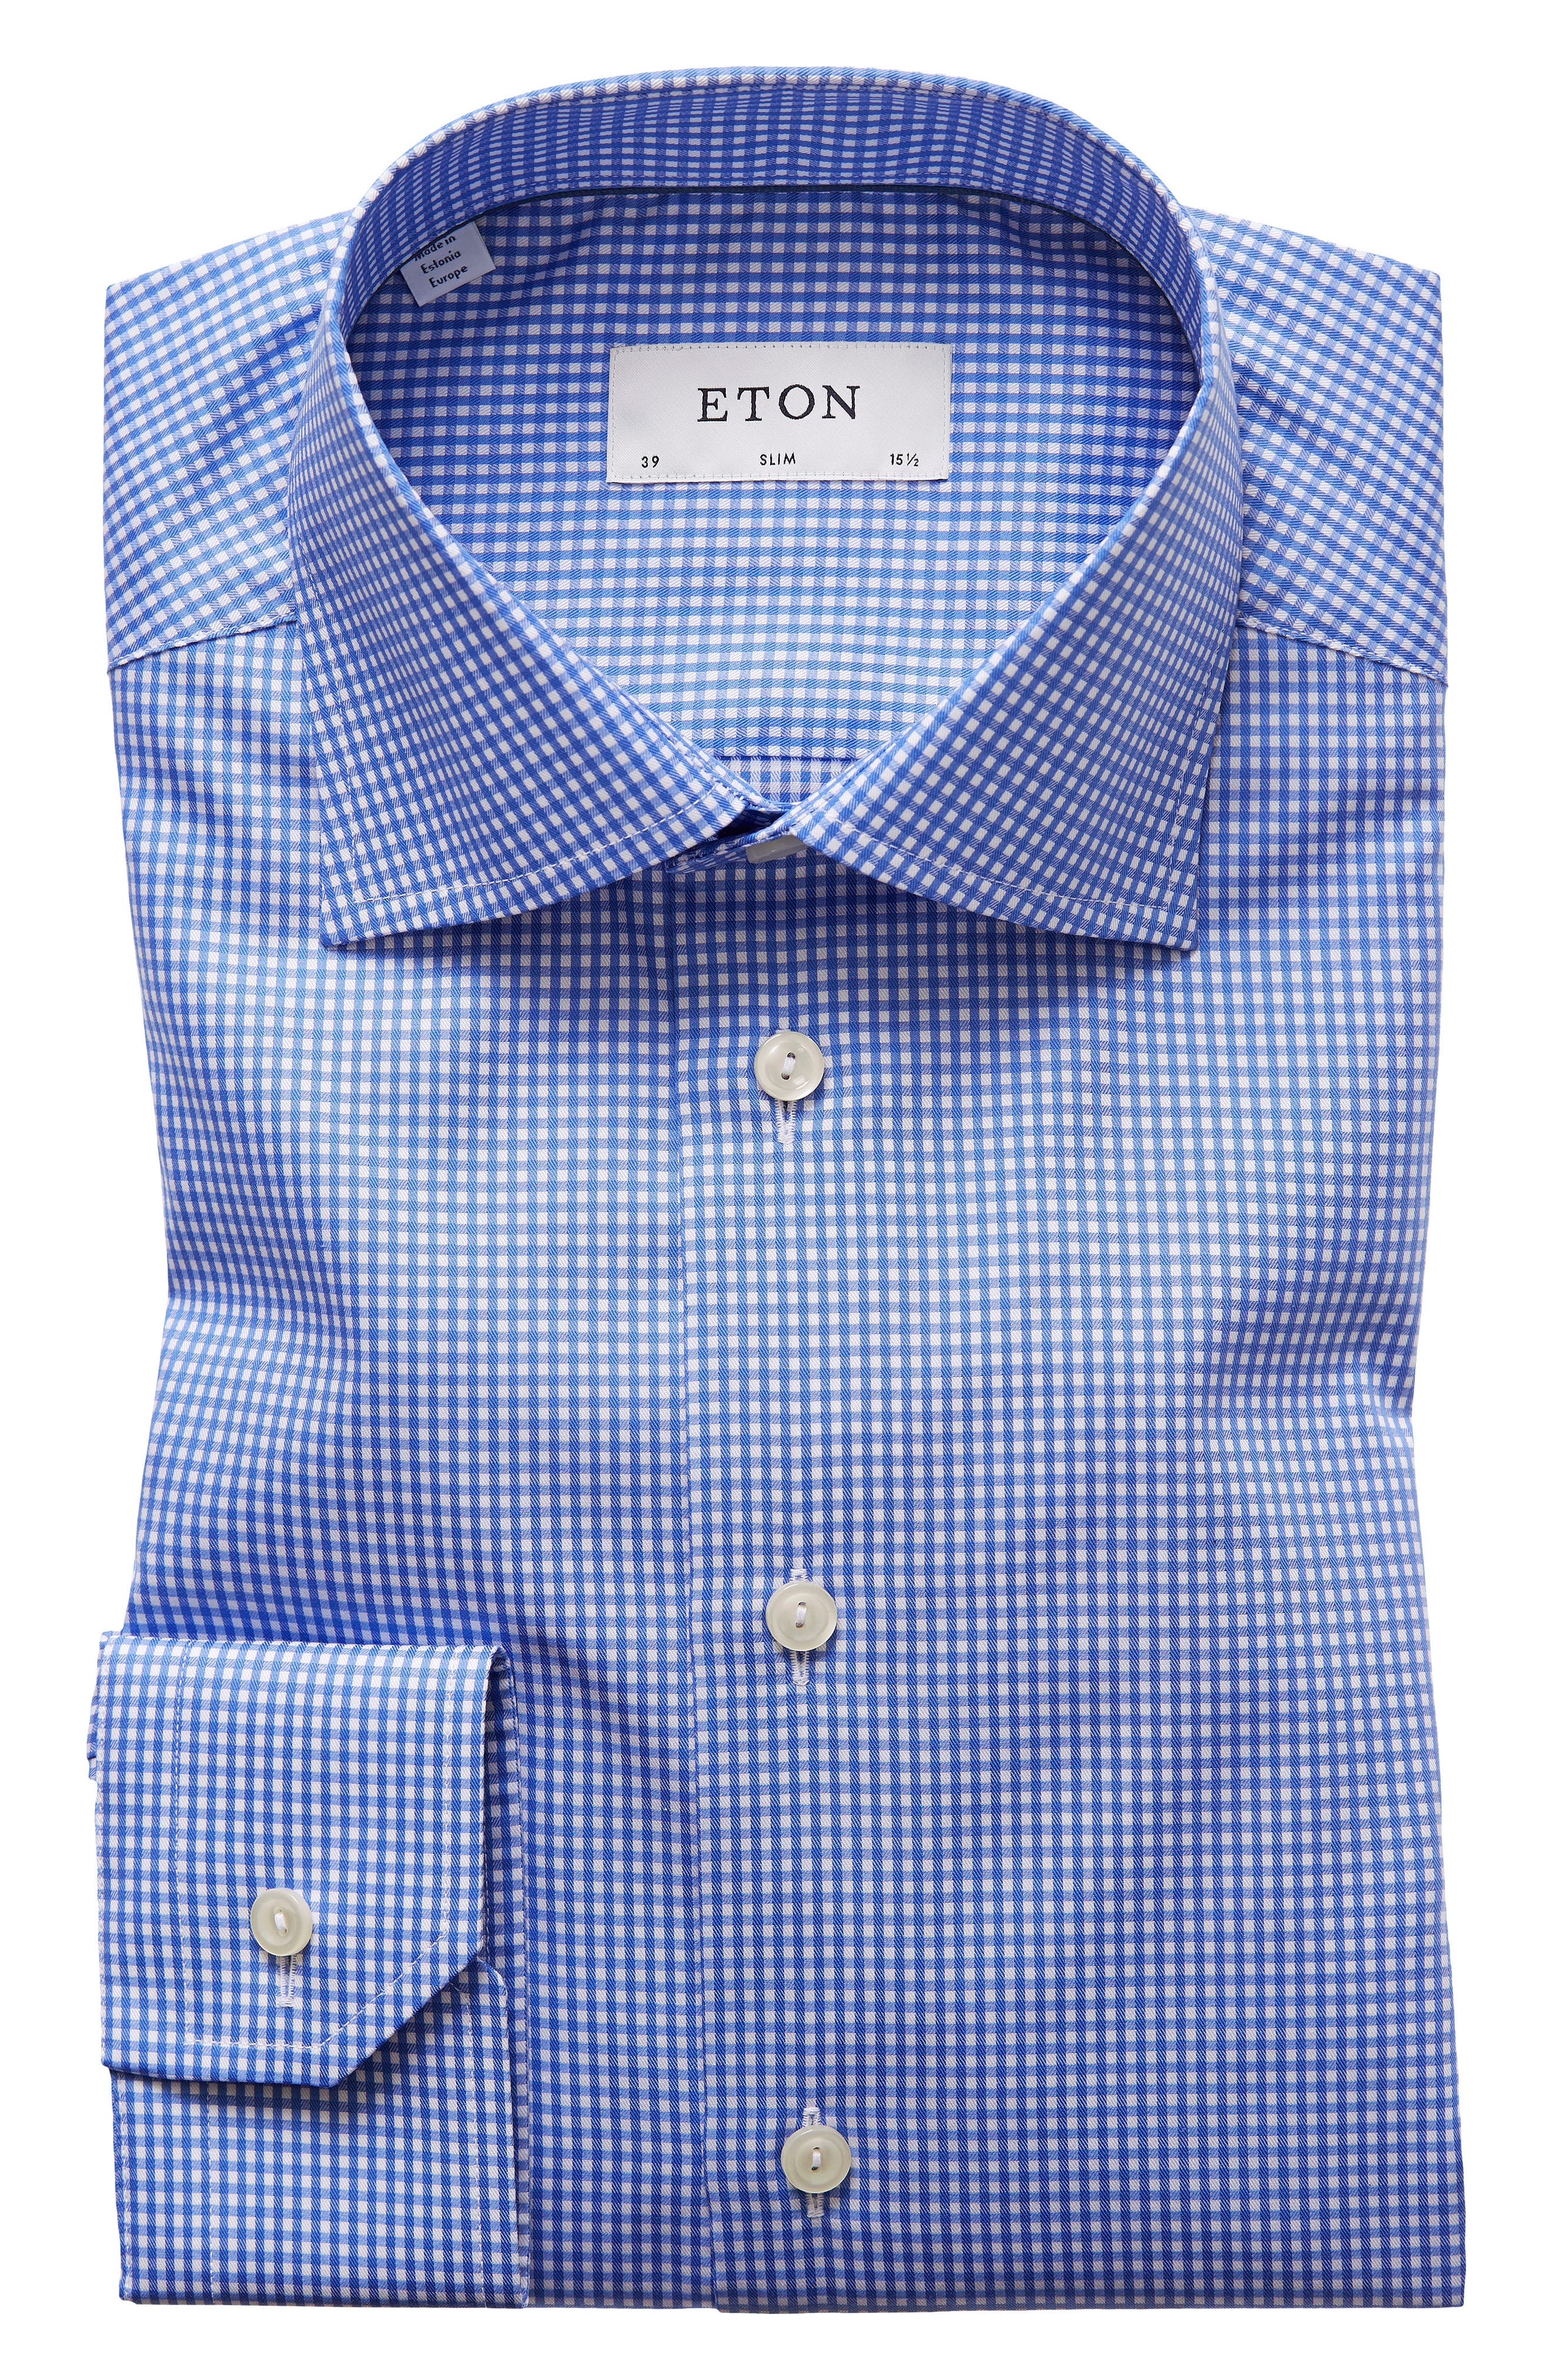 Extra Slim Fit Check Dress Shirt,                         Main,                         color, BLUE/ WHITE